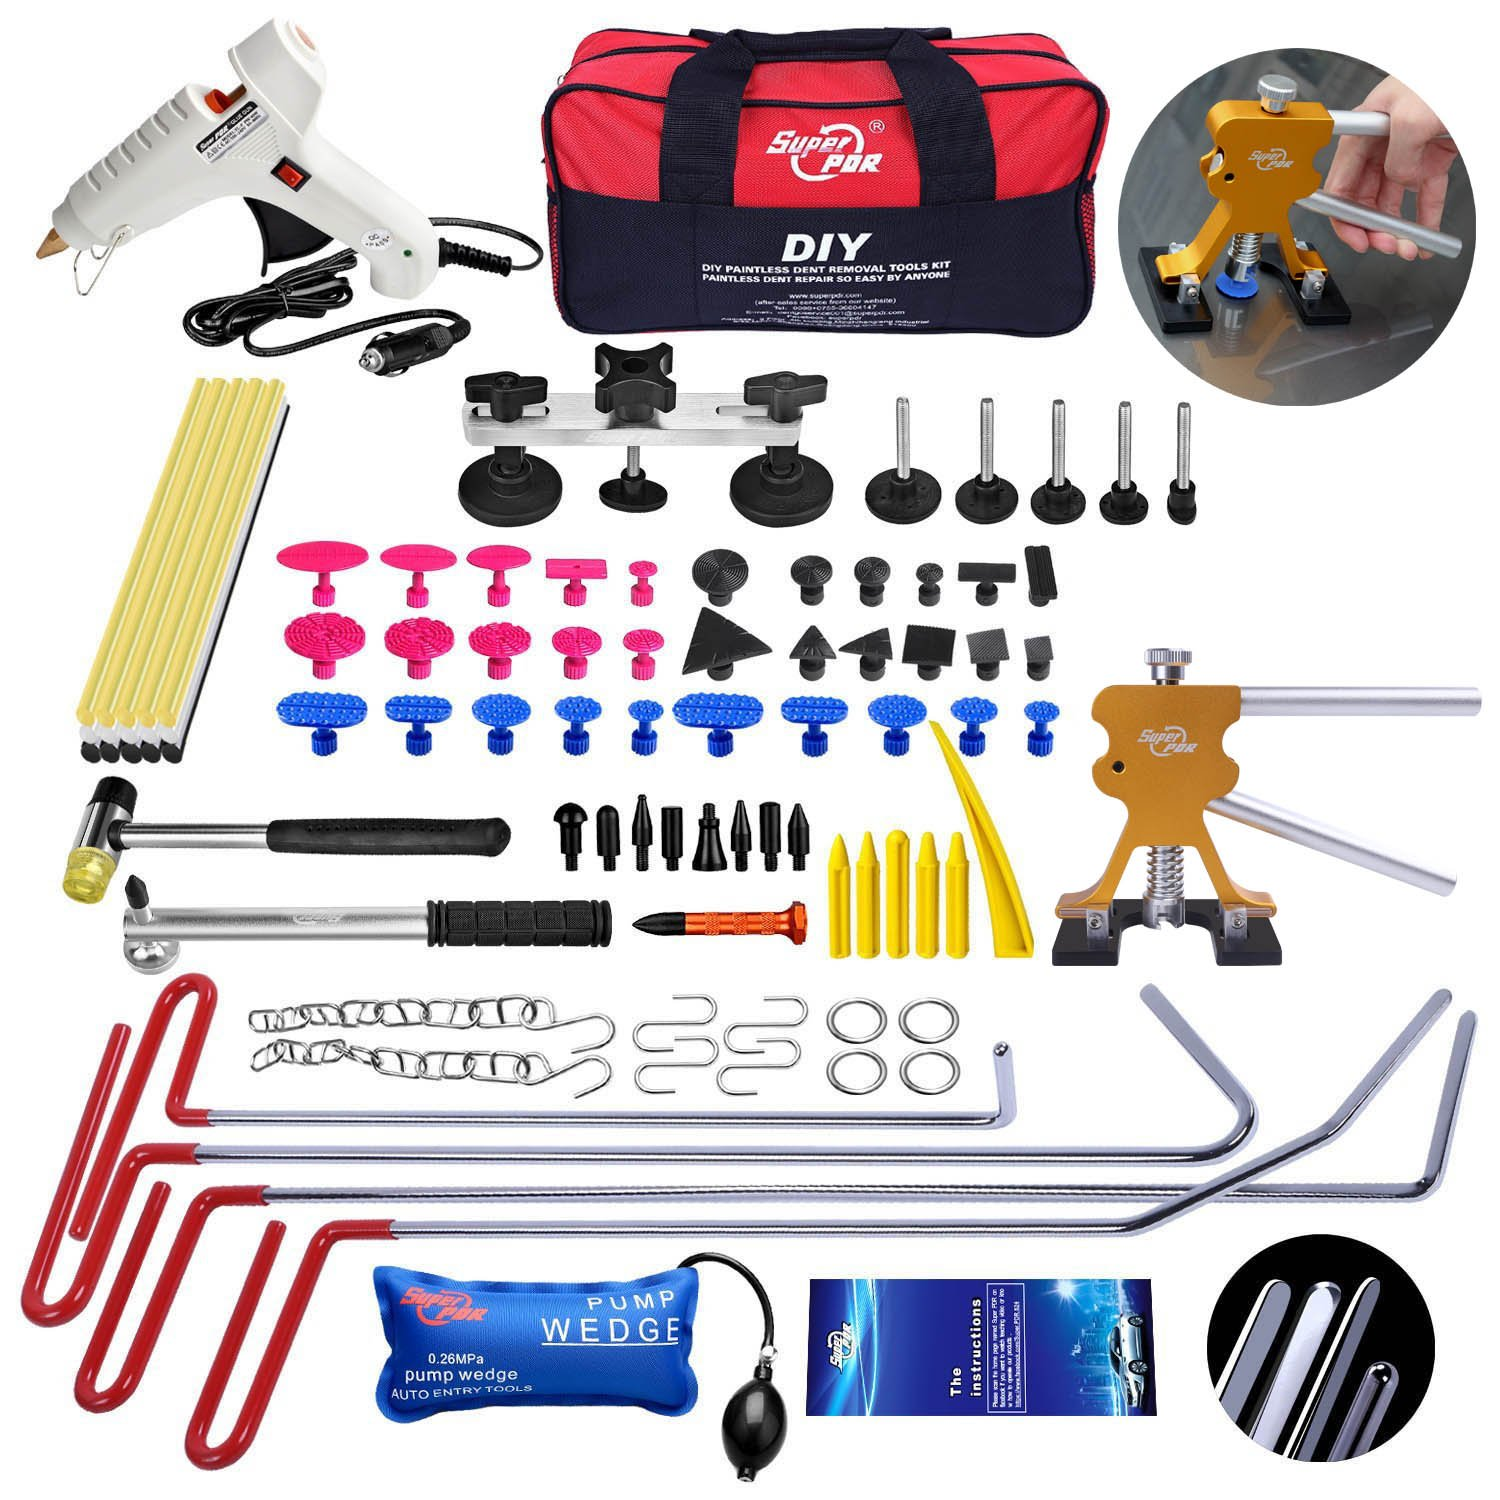 AUTOPDR 87Pcs DIY PDR Tools Motorcycle Auto Body Paintless Dent Removal Tools Kit Hot Glue Glun Sticks Dent Puller for Hail Damage Repair Kit